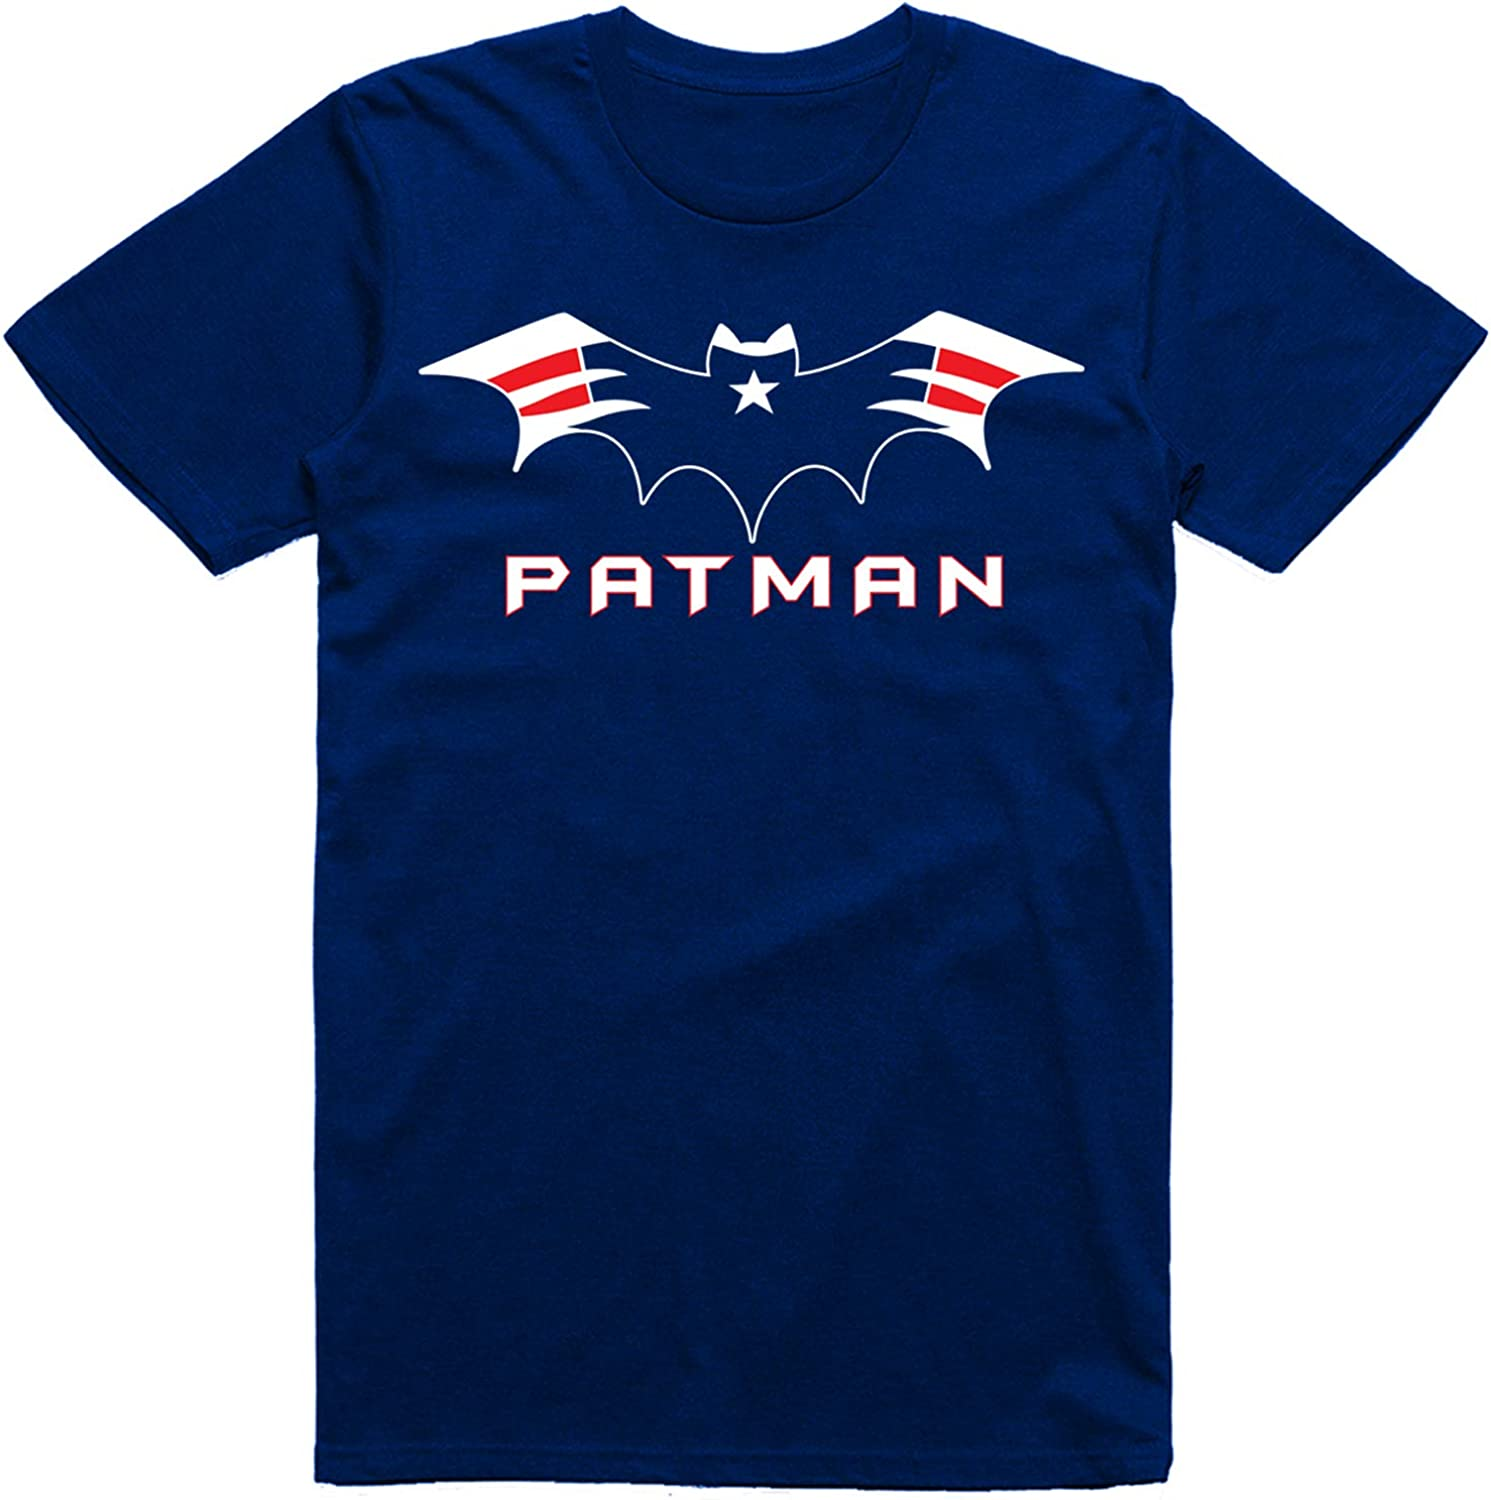 Vibeink New England Football Fans Bat Logo Patman Classic T-Shirt